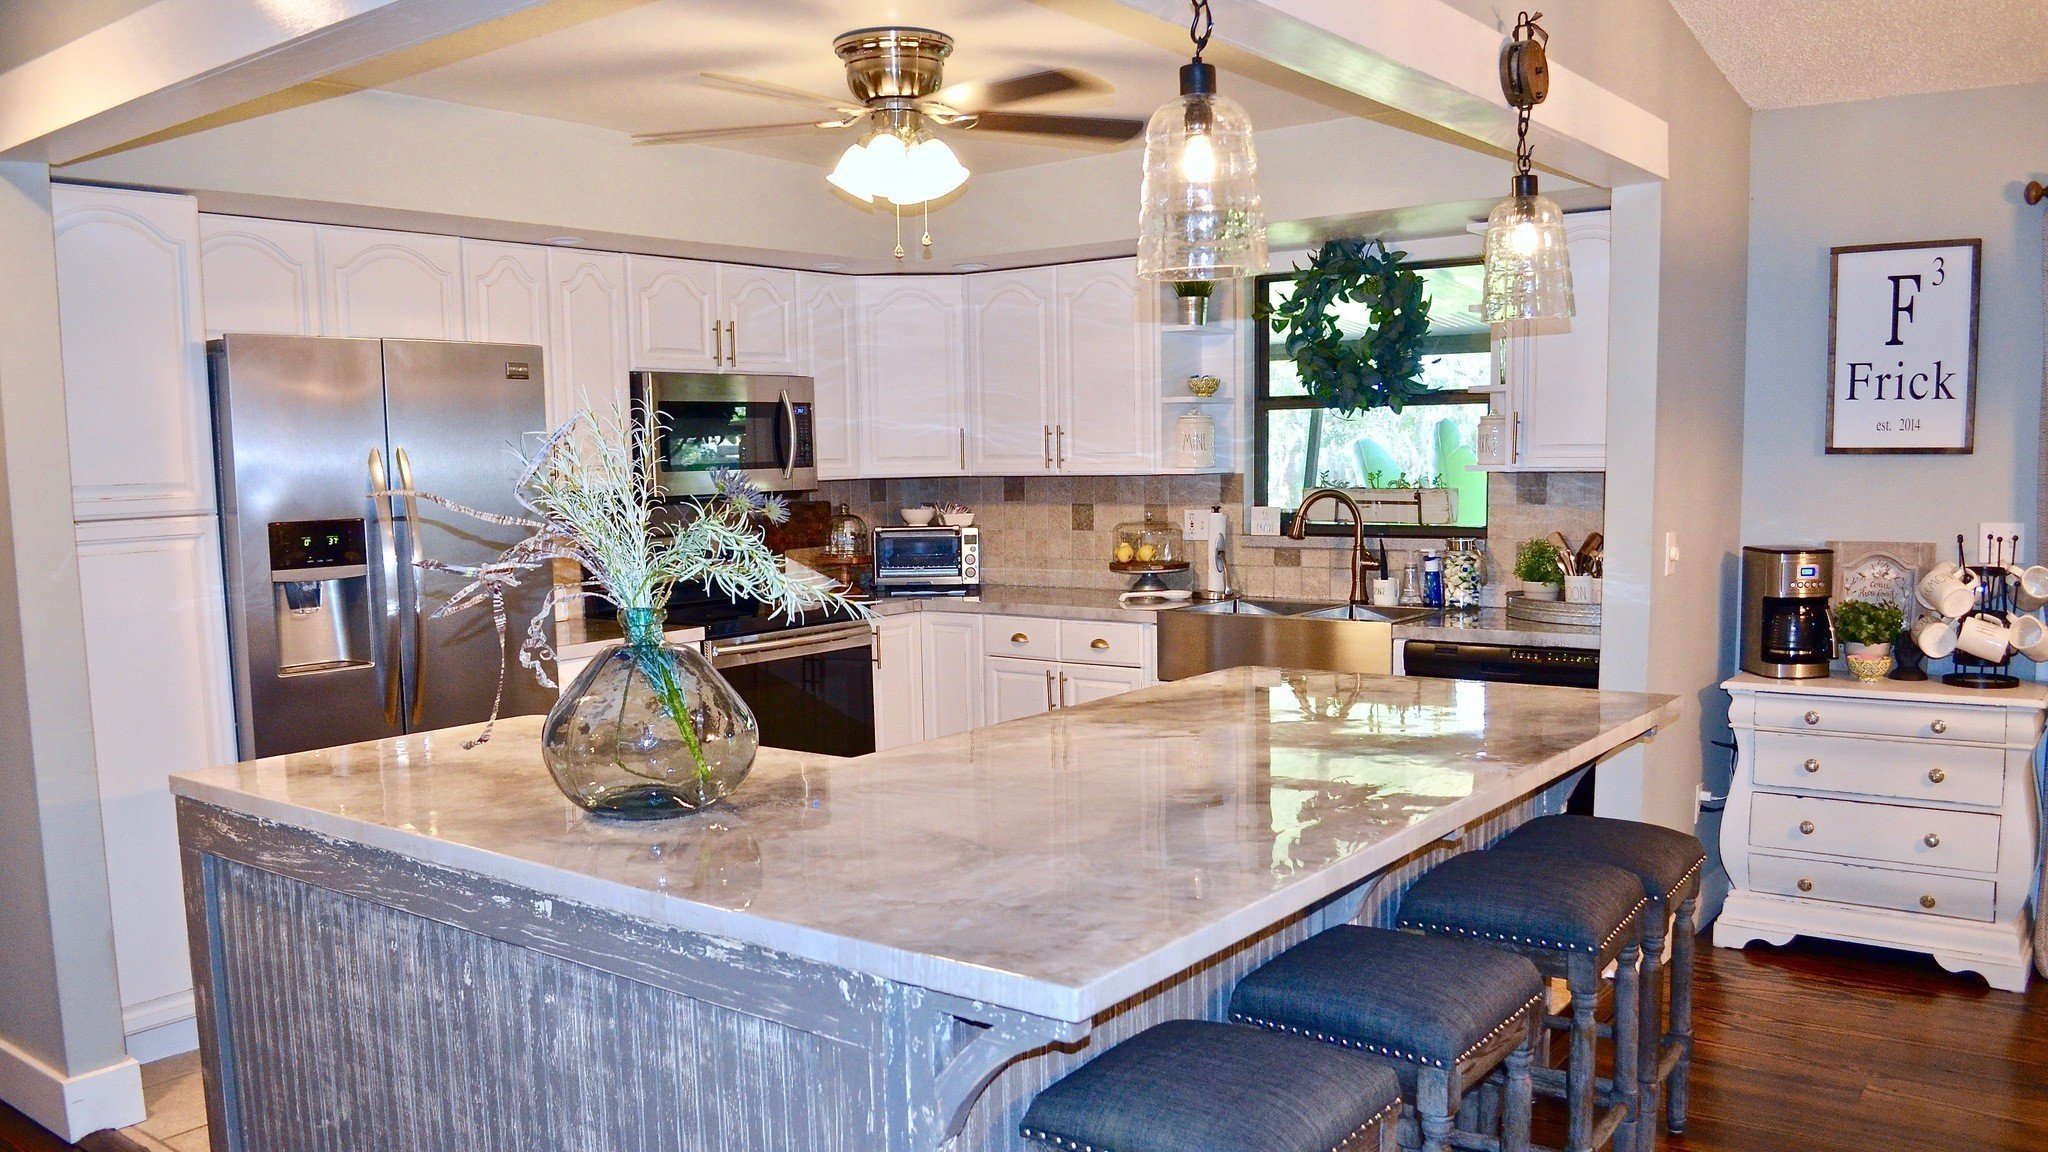 Top 5 Things to Know When Painting Your Kitchen Cabinets